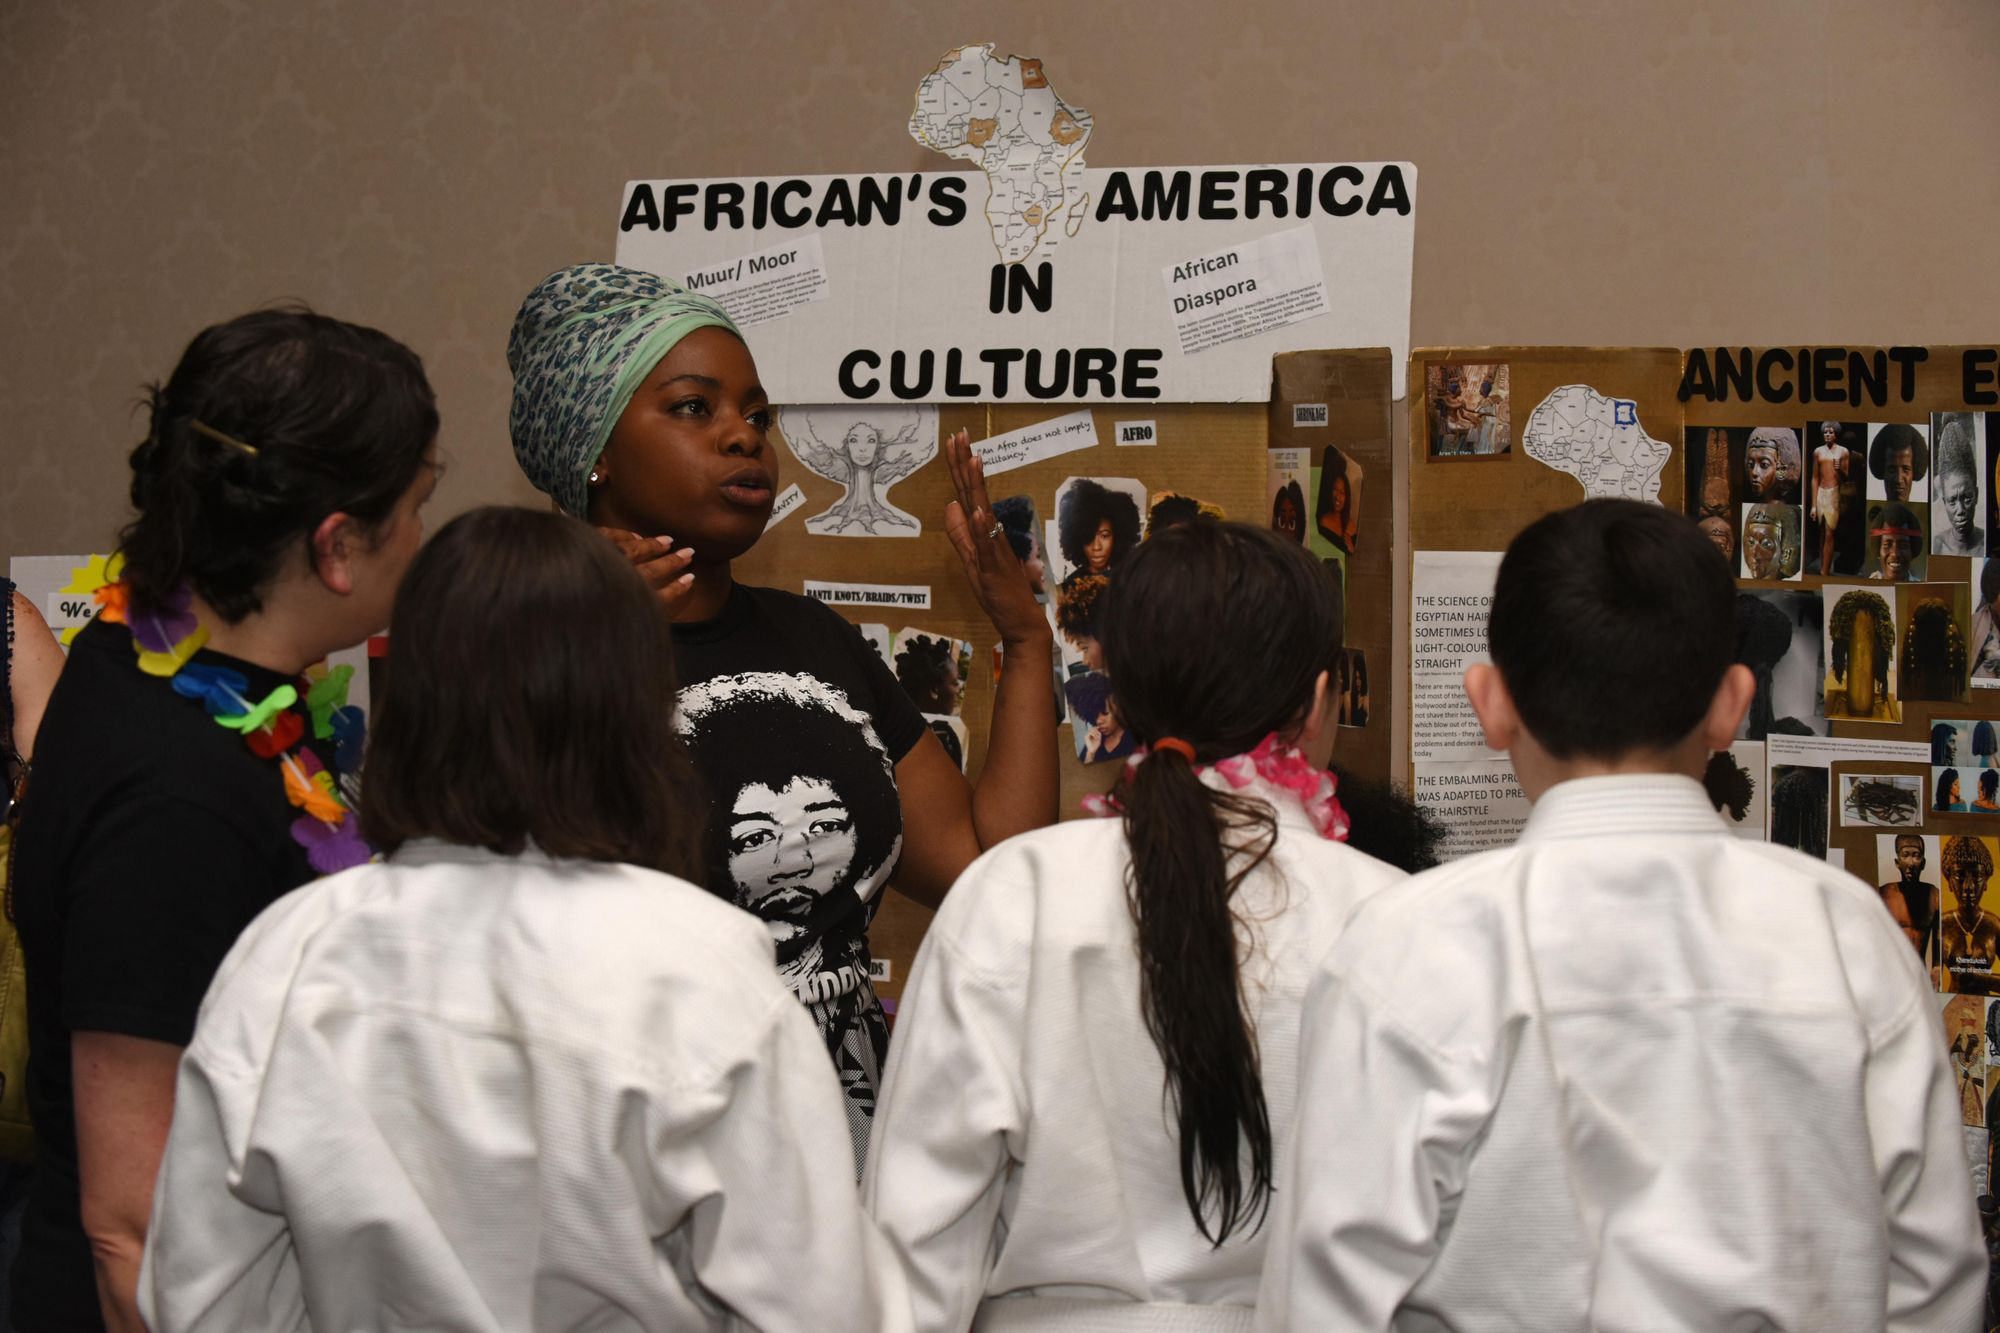 Identifying with the black and immigrant experiences in America